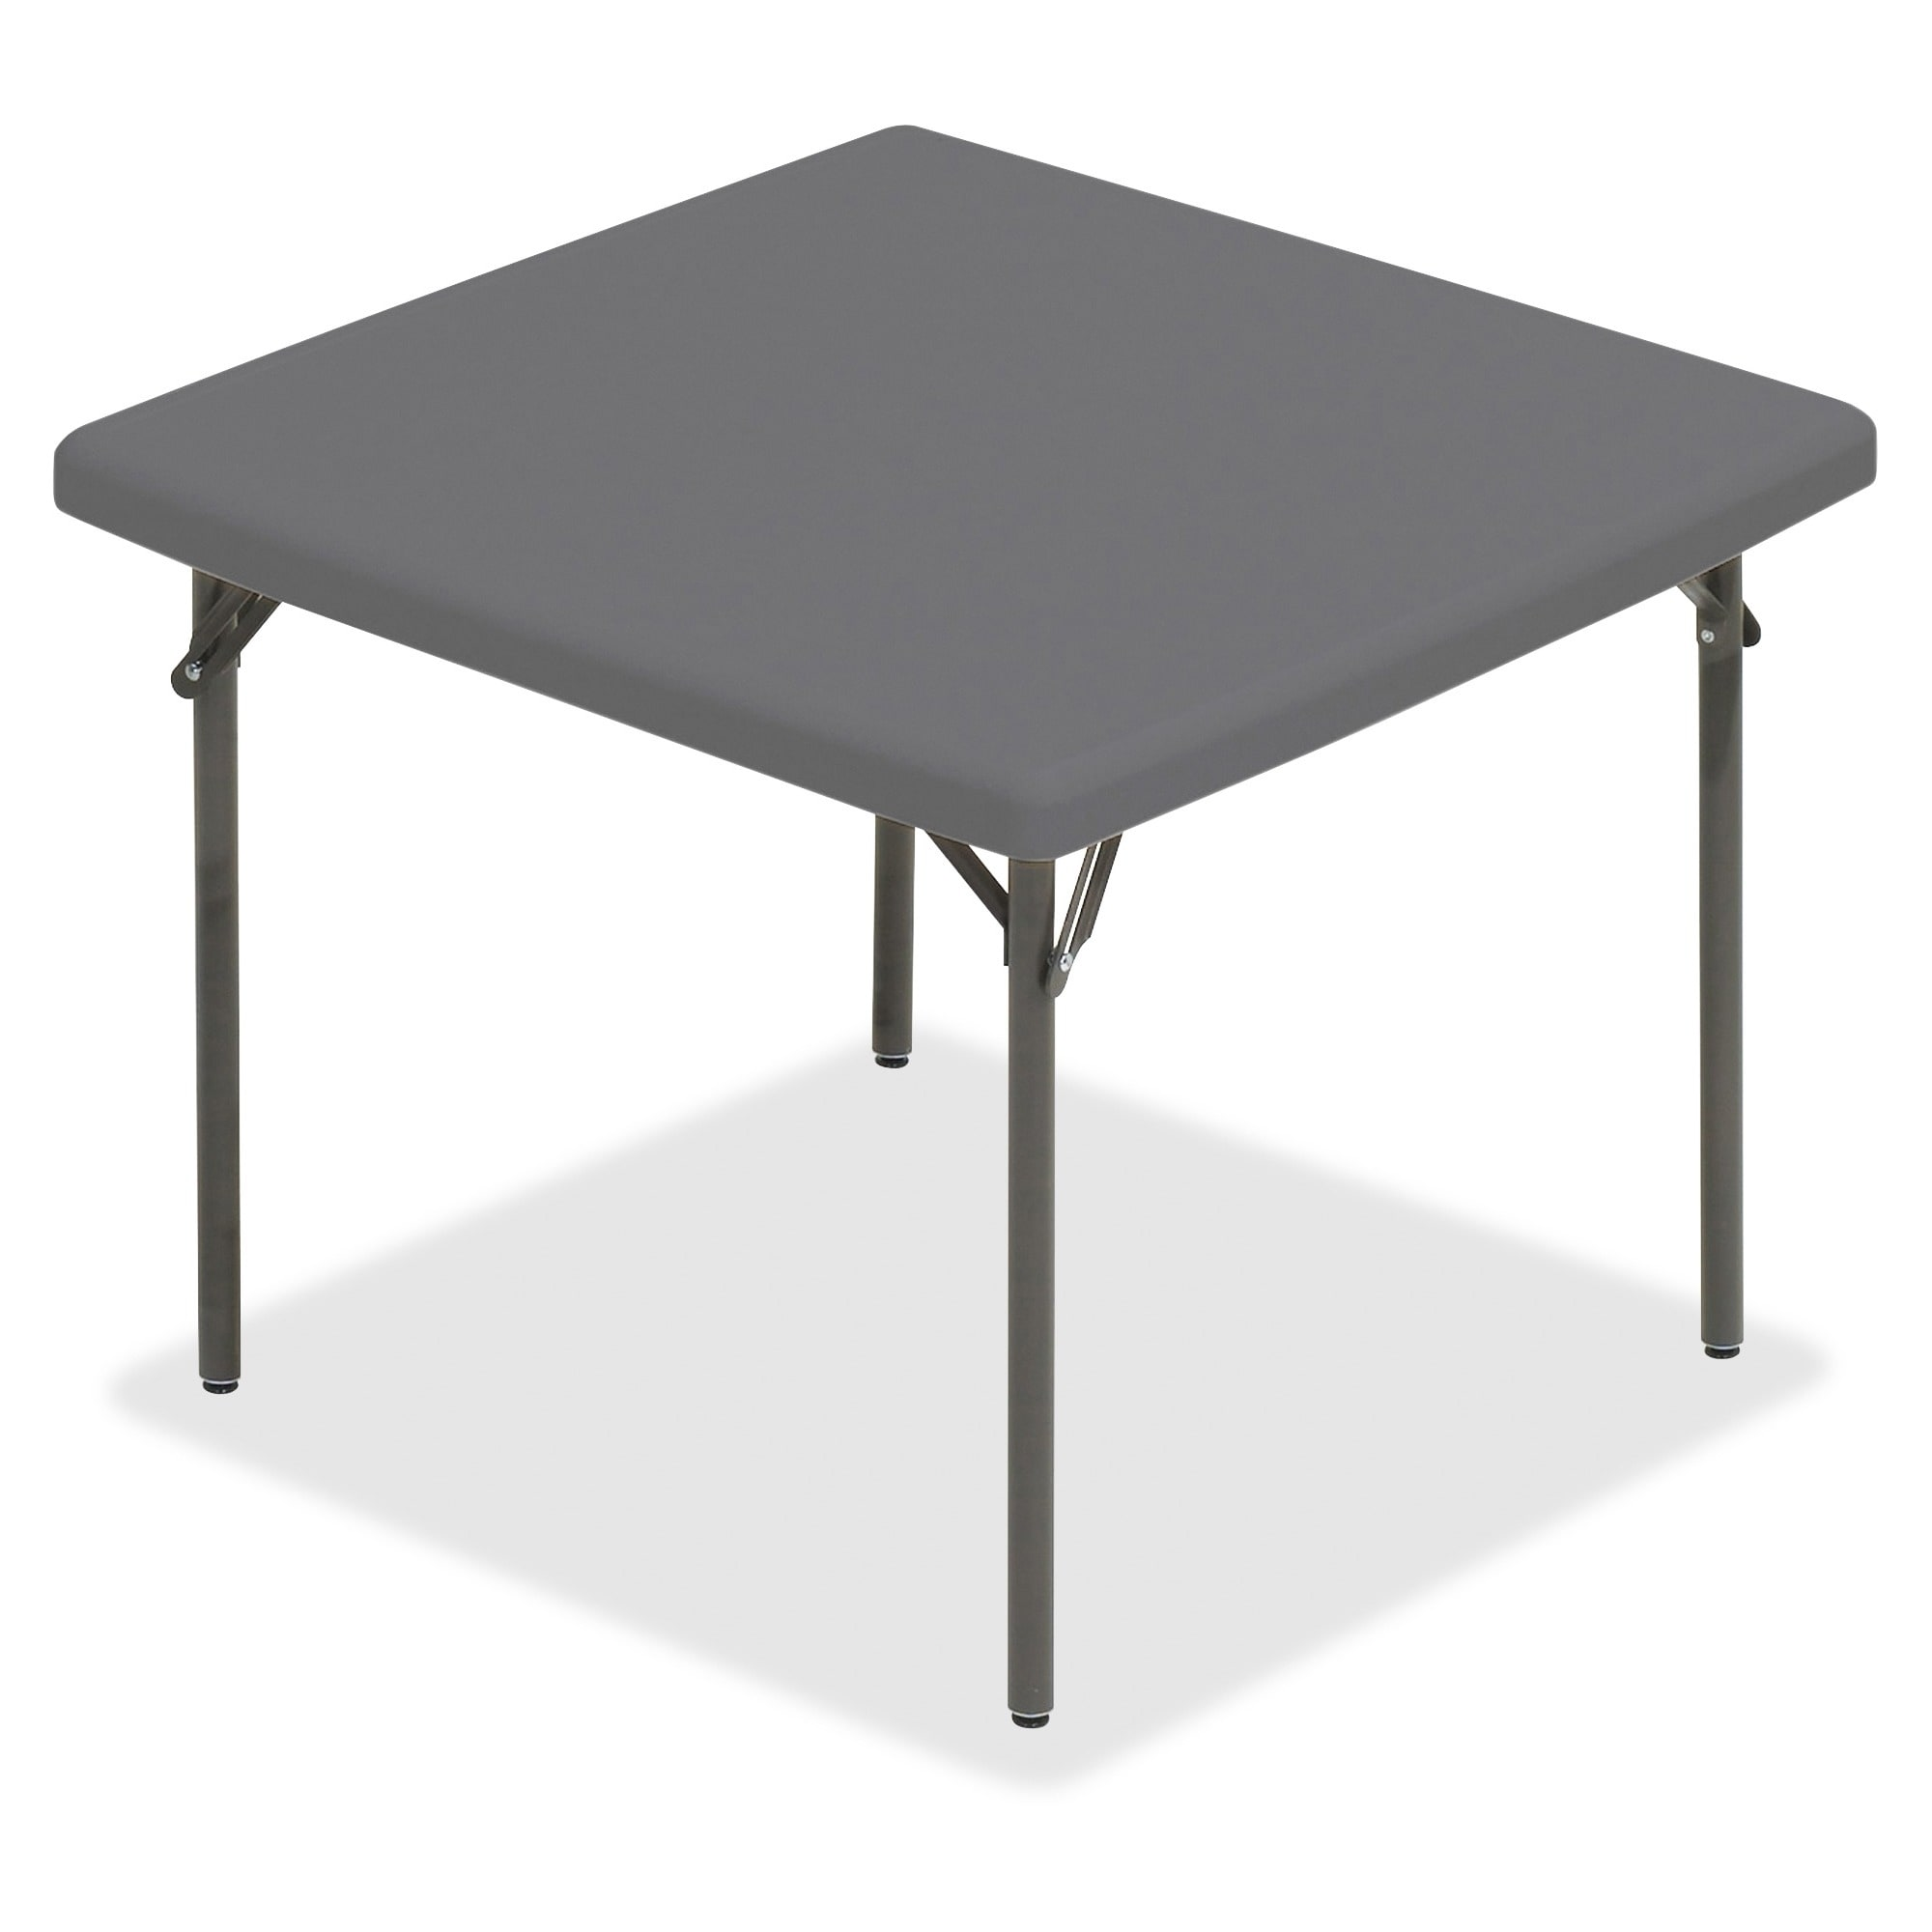 Iceberg IndestrucTable TOO Square Folding Table   Charcoal (Or Charcoal  Gray)   Free Shipping Today   Overstock   18980272